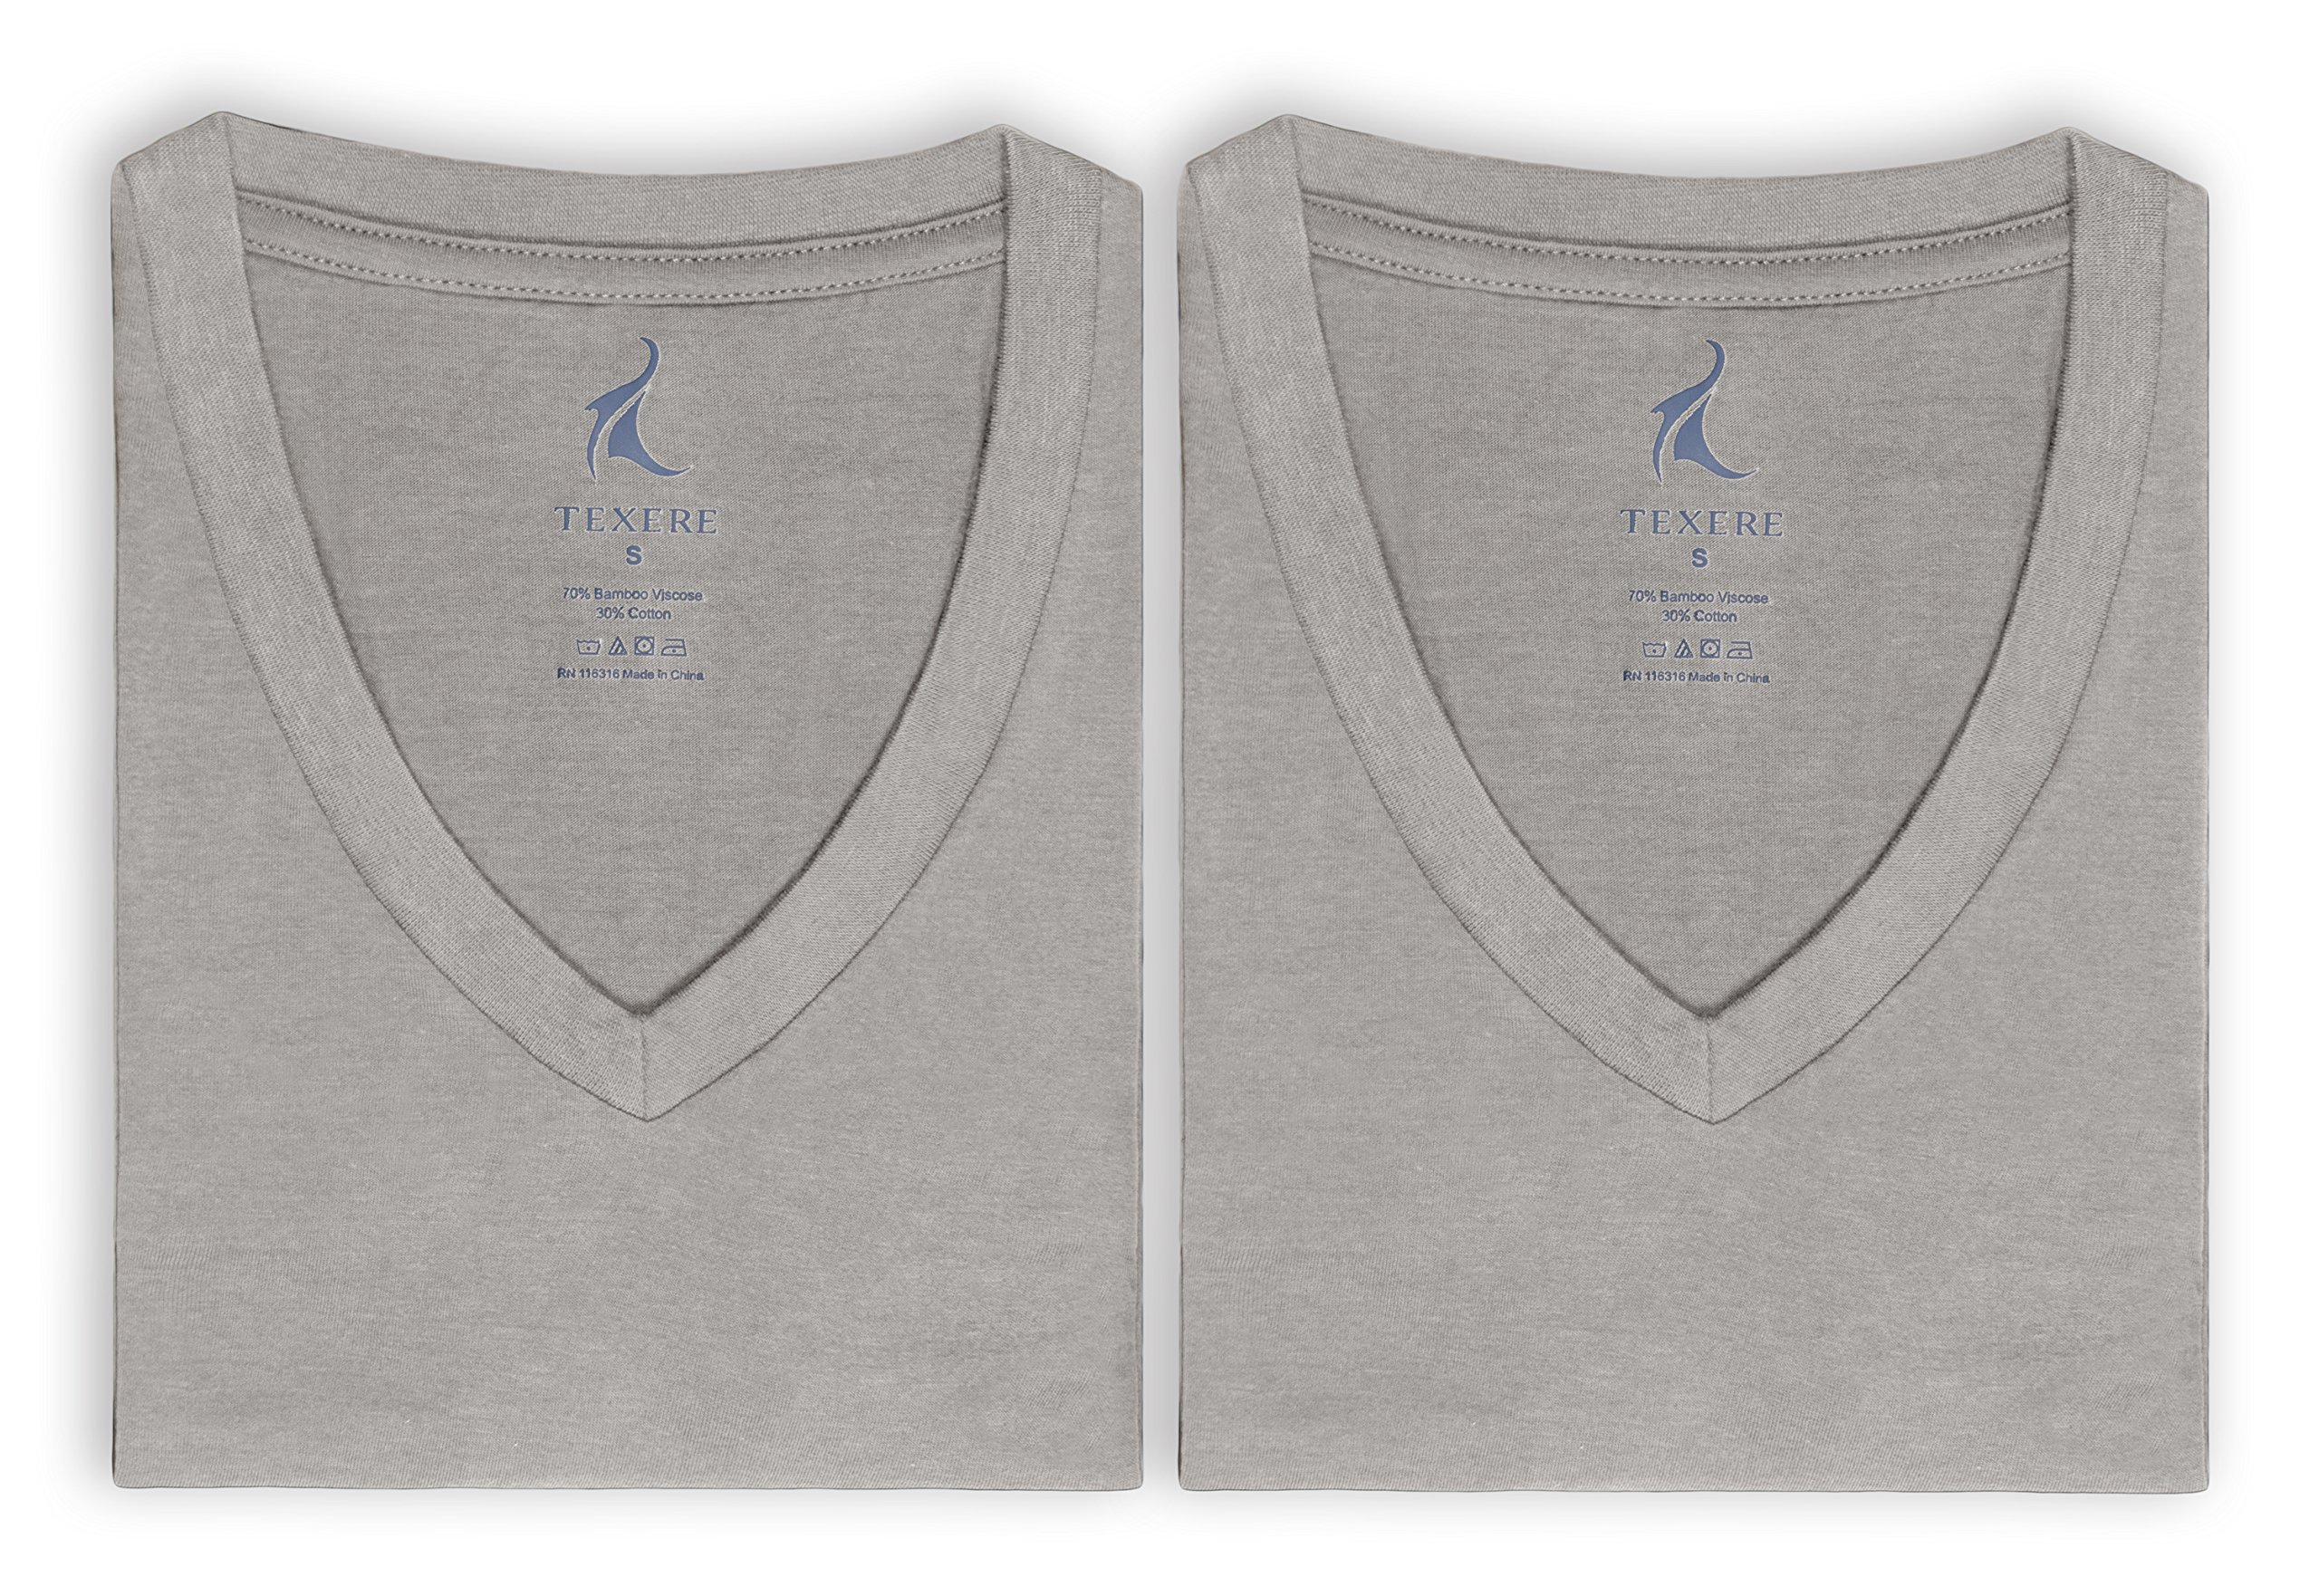 Men's V-Neck Undershirts in Bamboo Viscose - 2 Pack Shirt for Him by Texere (Light Gray, Large/Tall) Romantic Gifts for Boyfriend Husband Fiance MB6302-LGR-LT